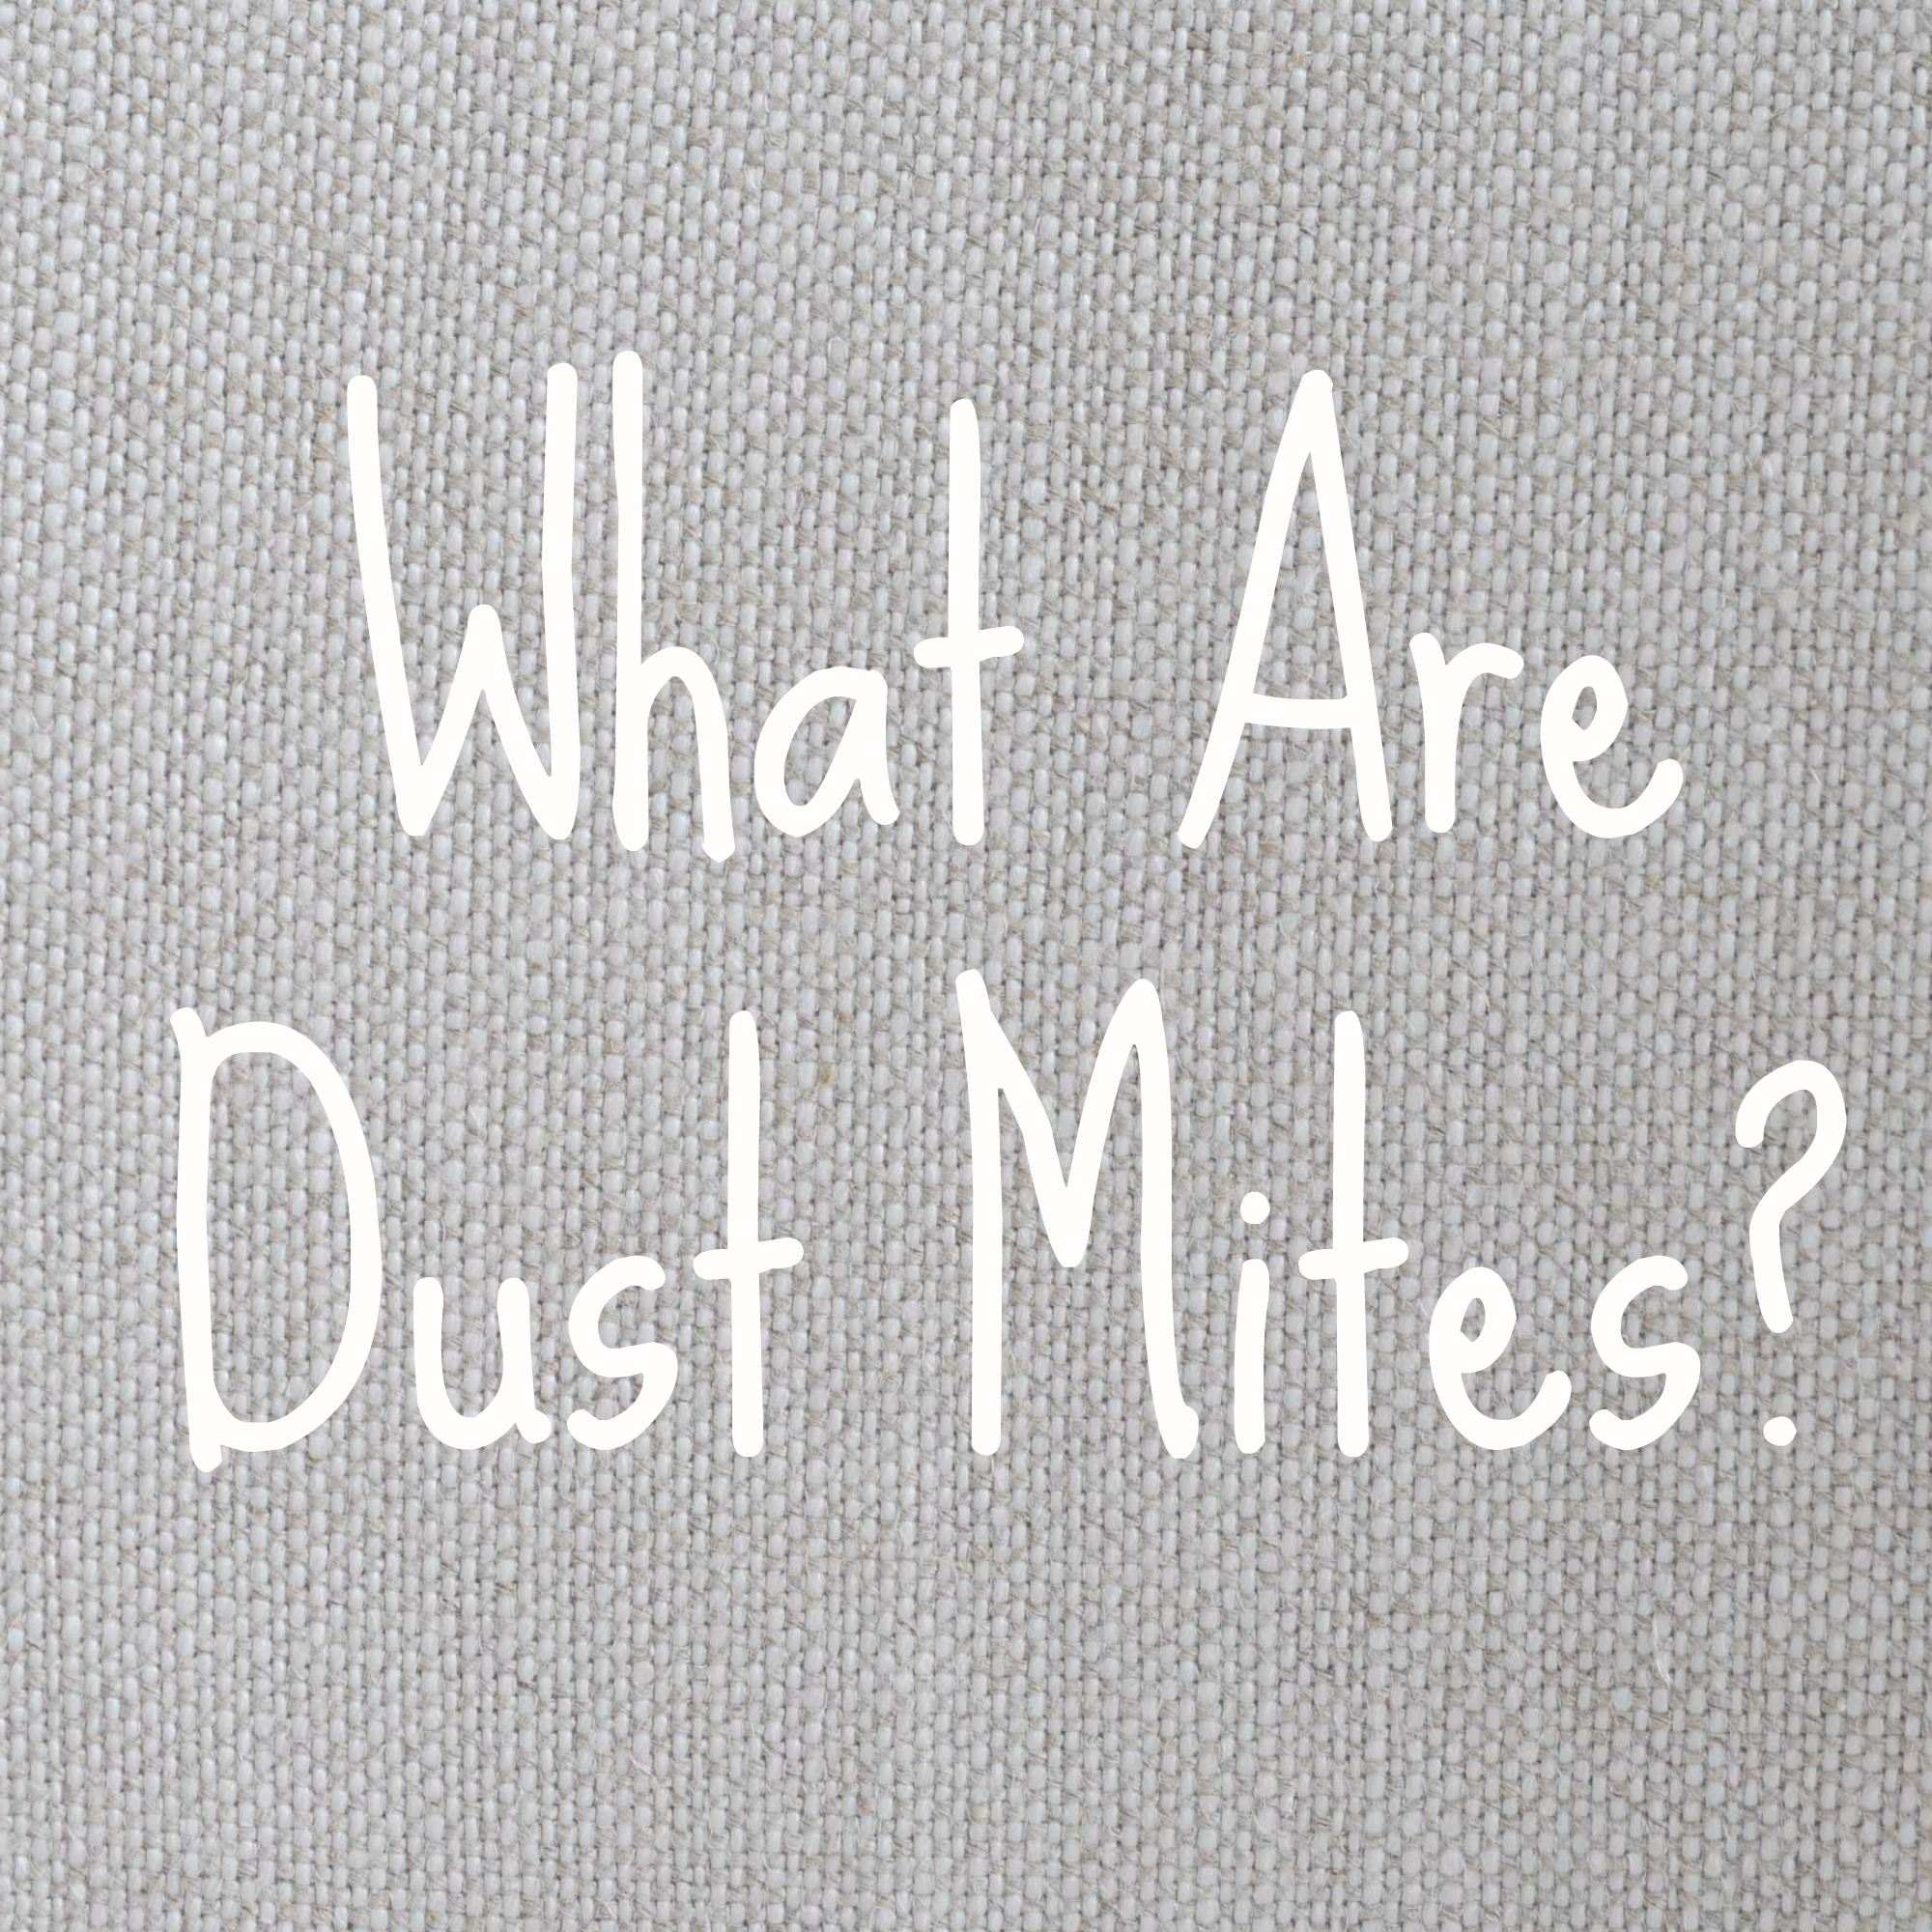 What are dust mites